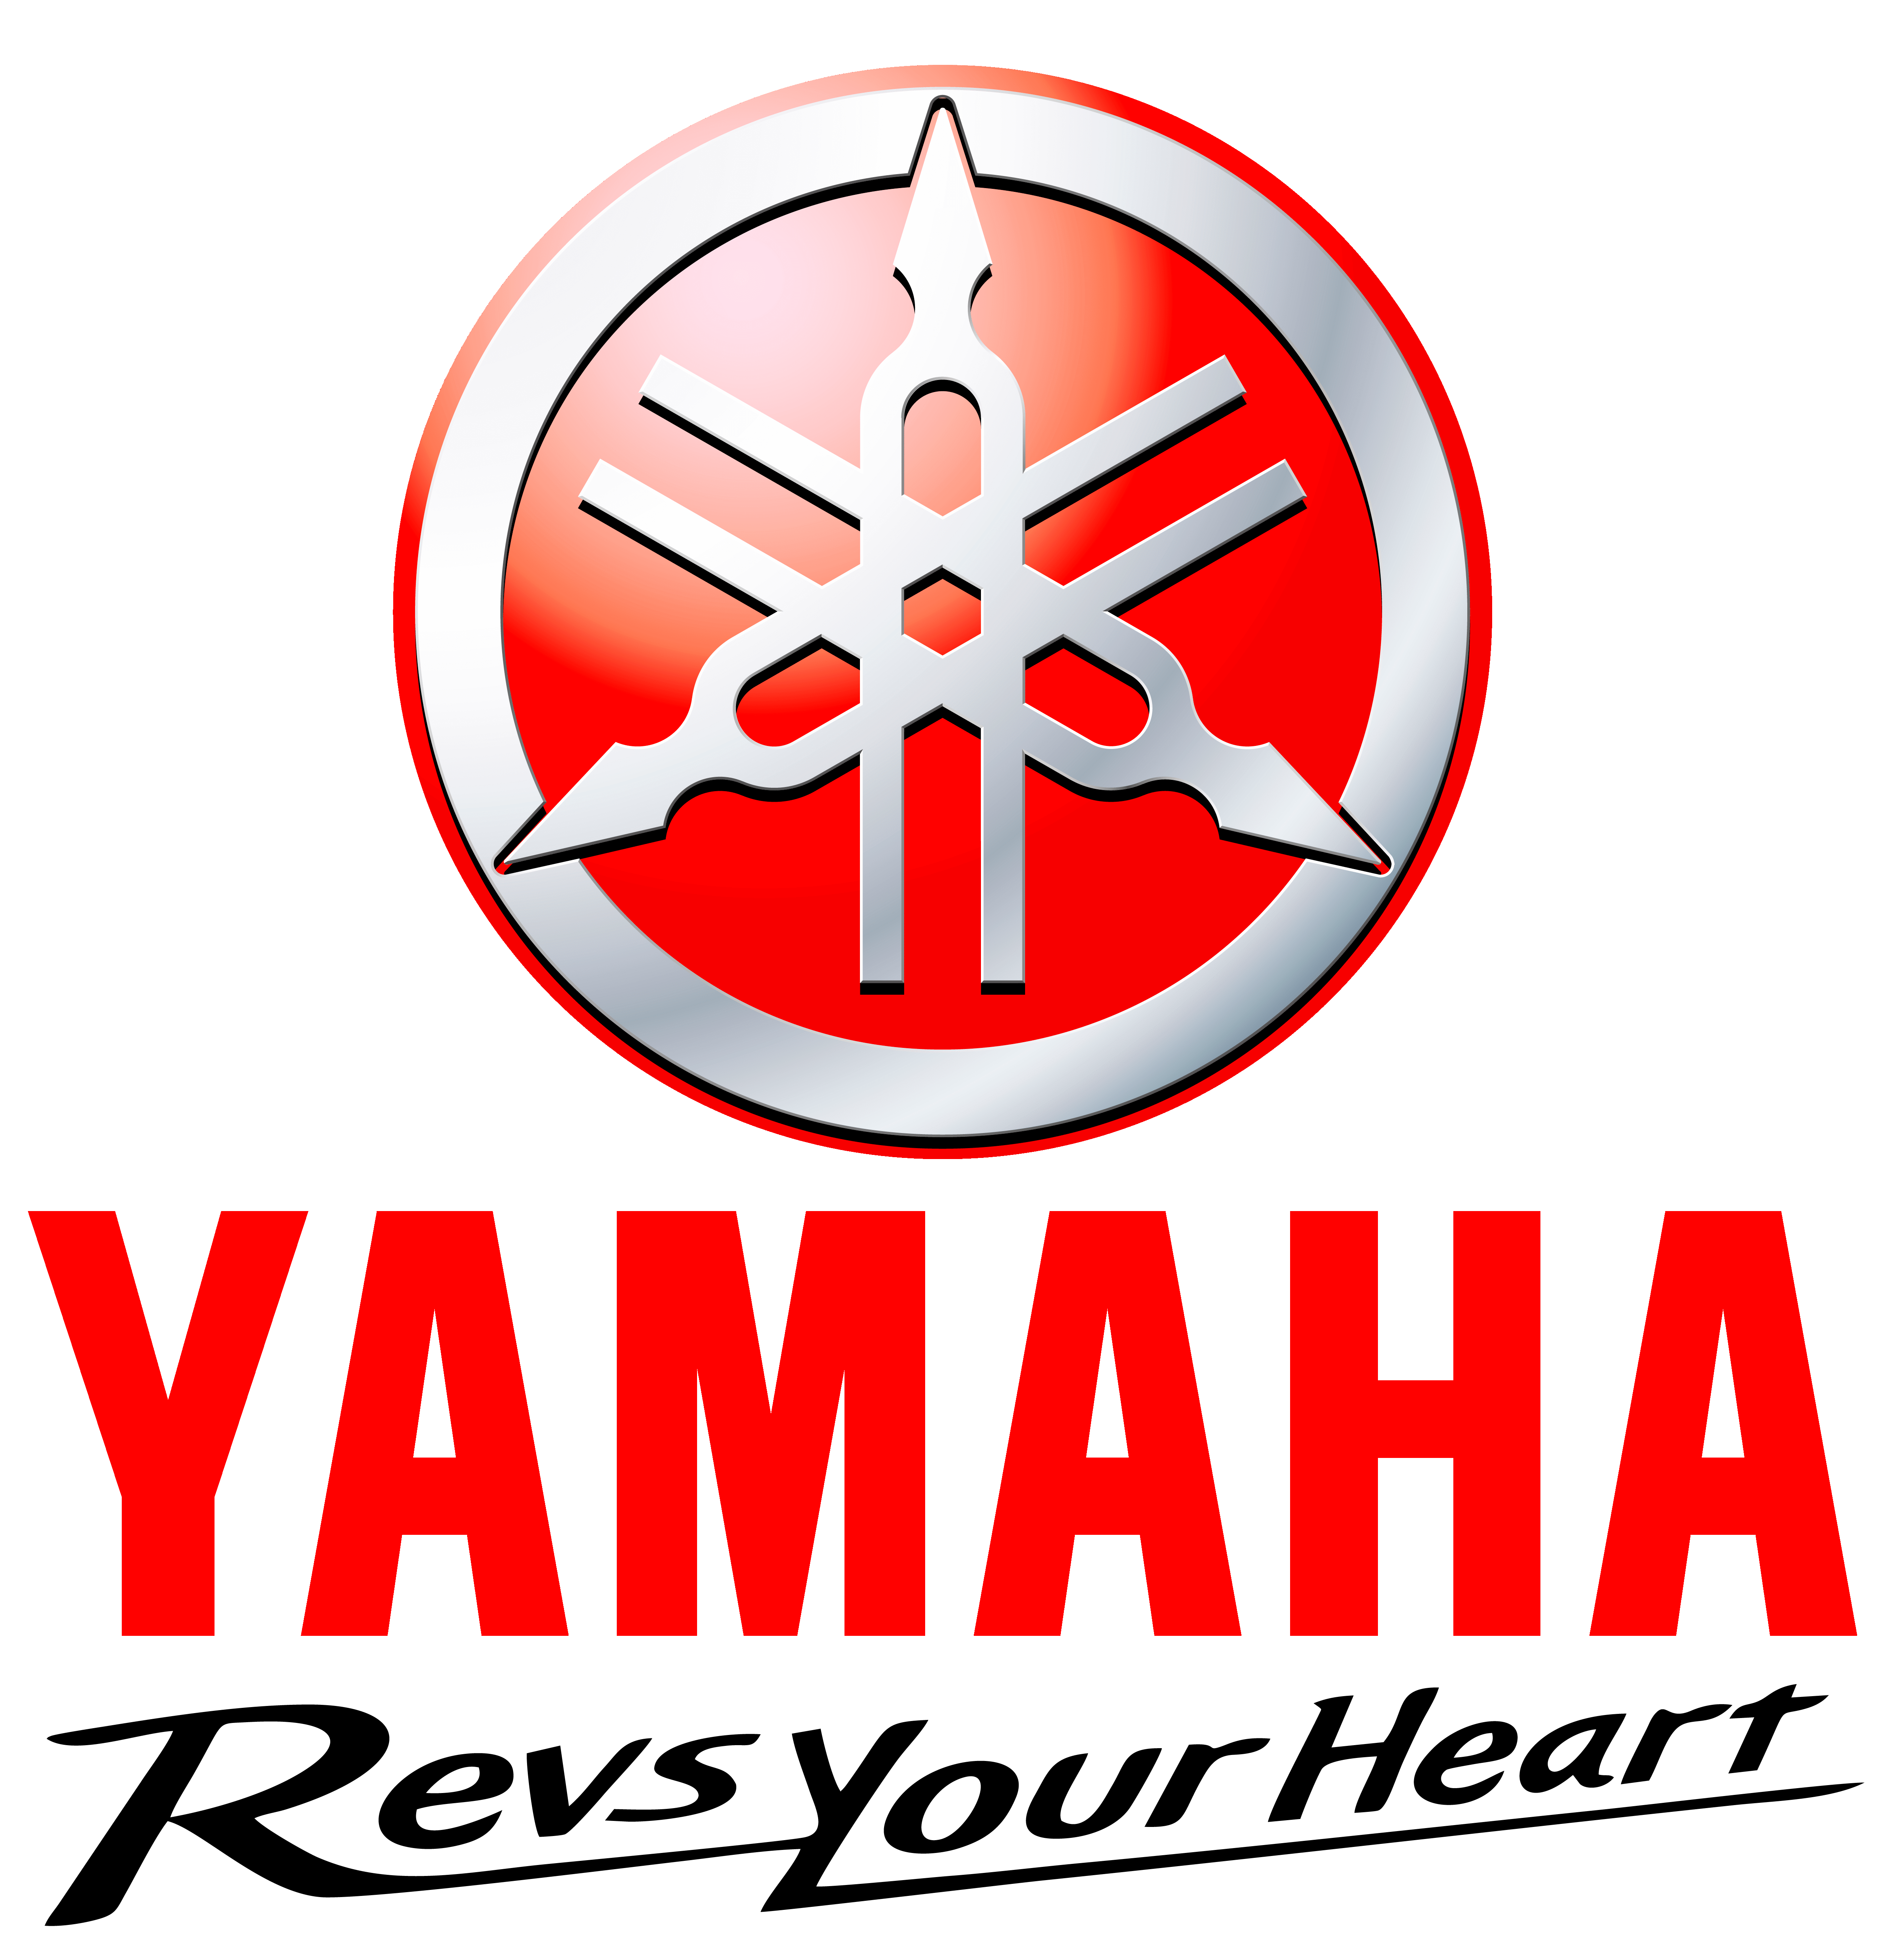 yamaha revs your heart png logo 3873